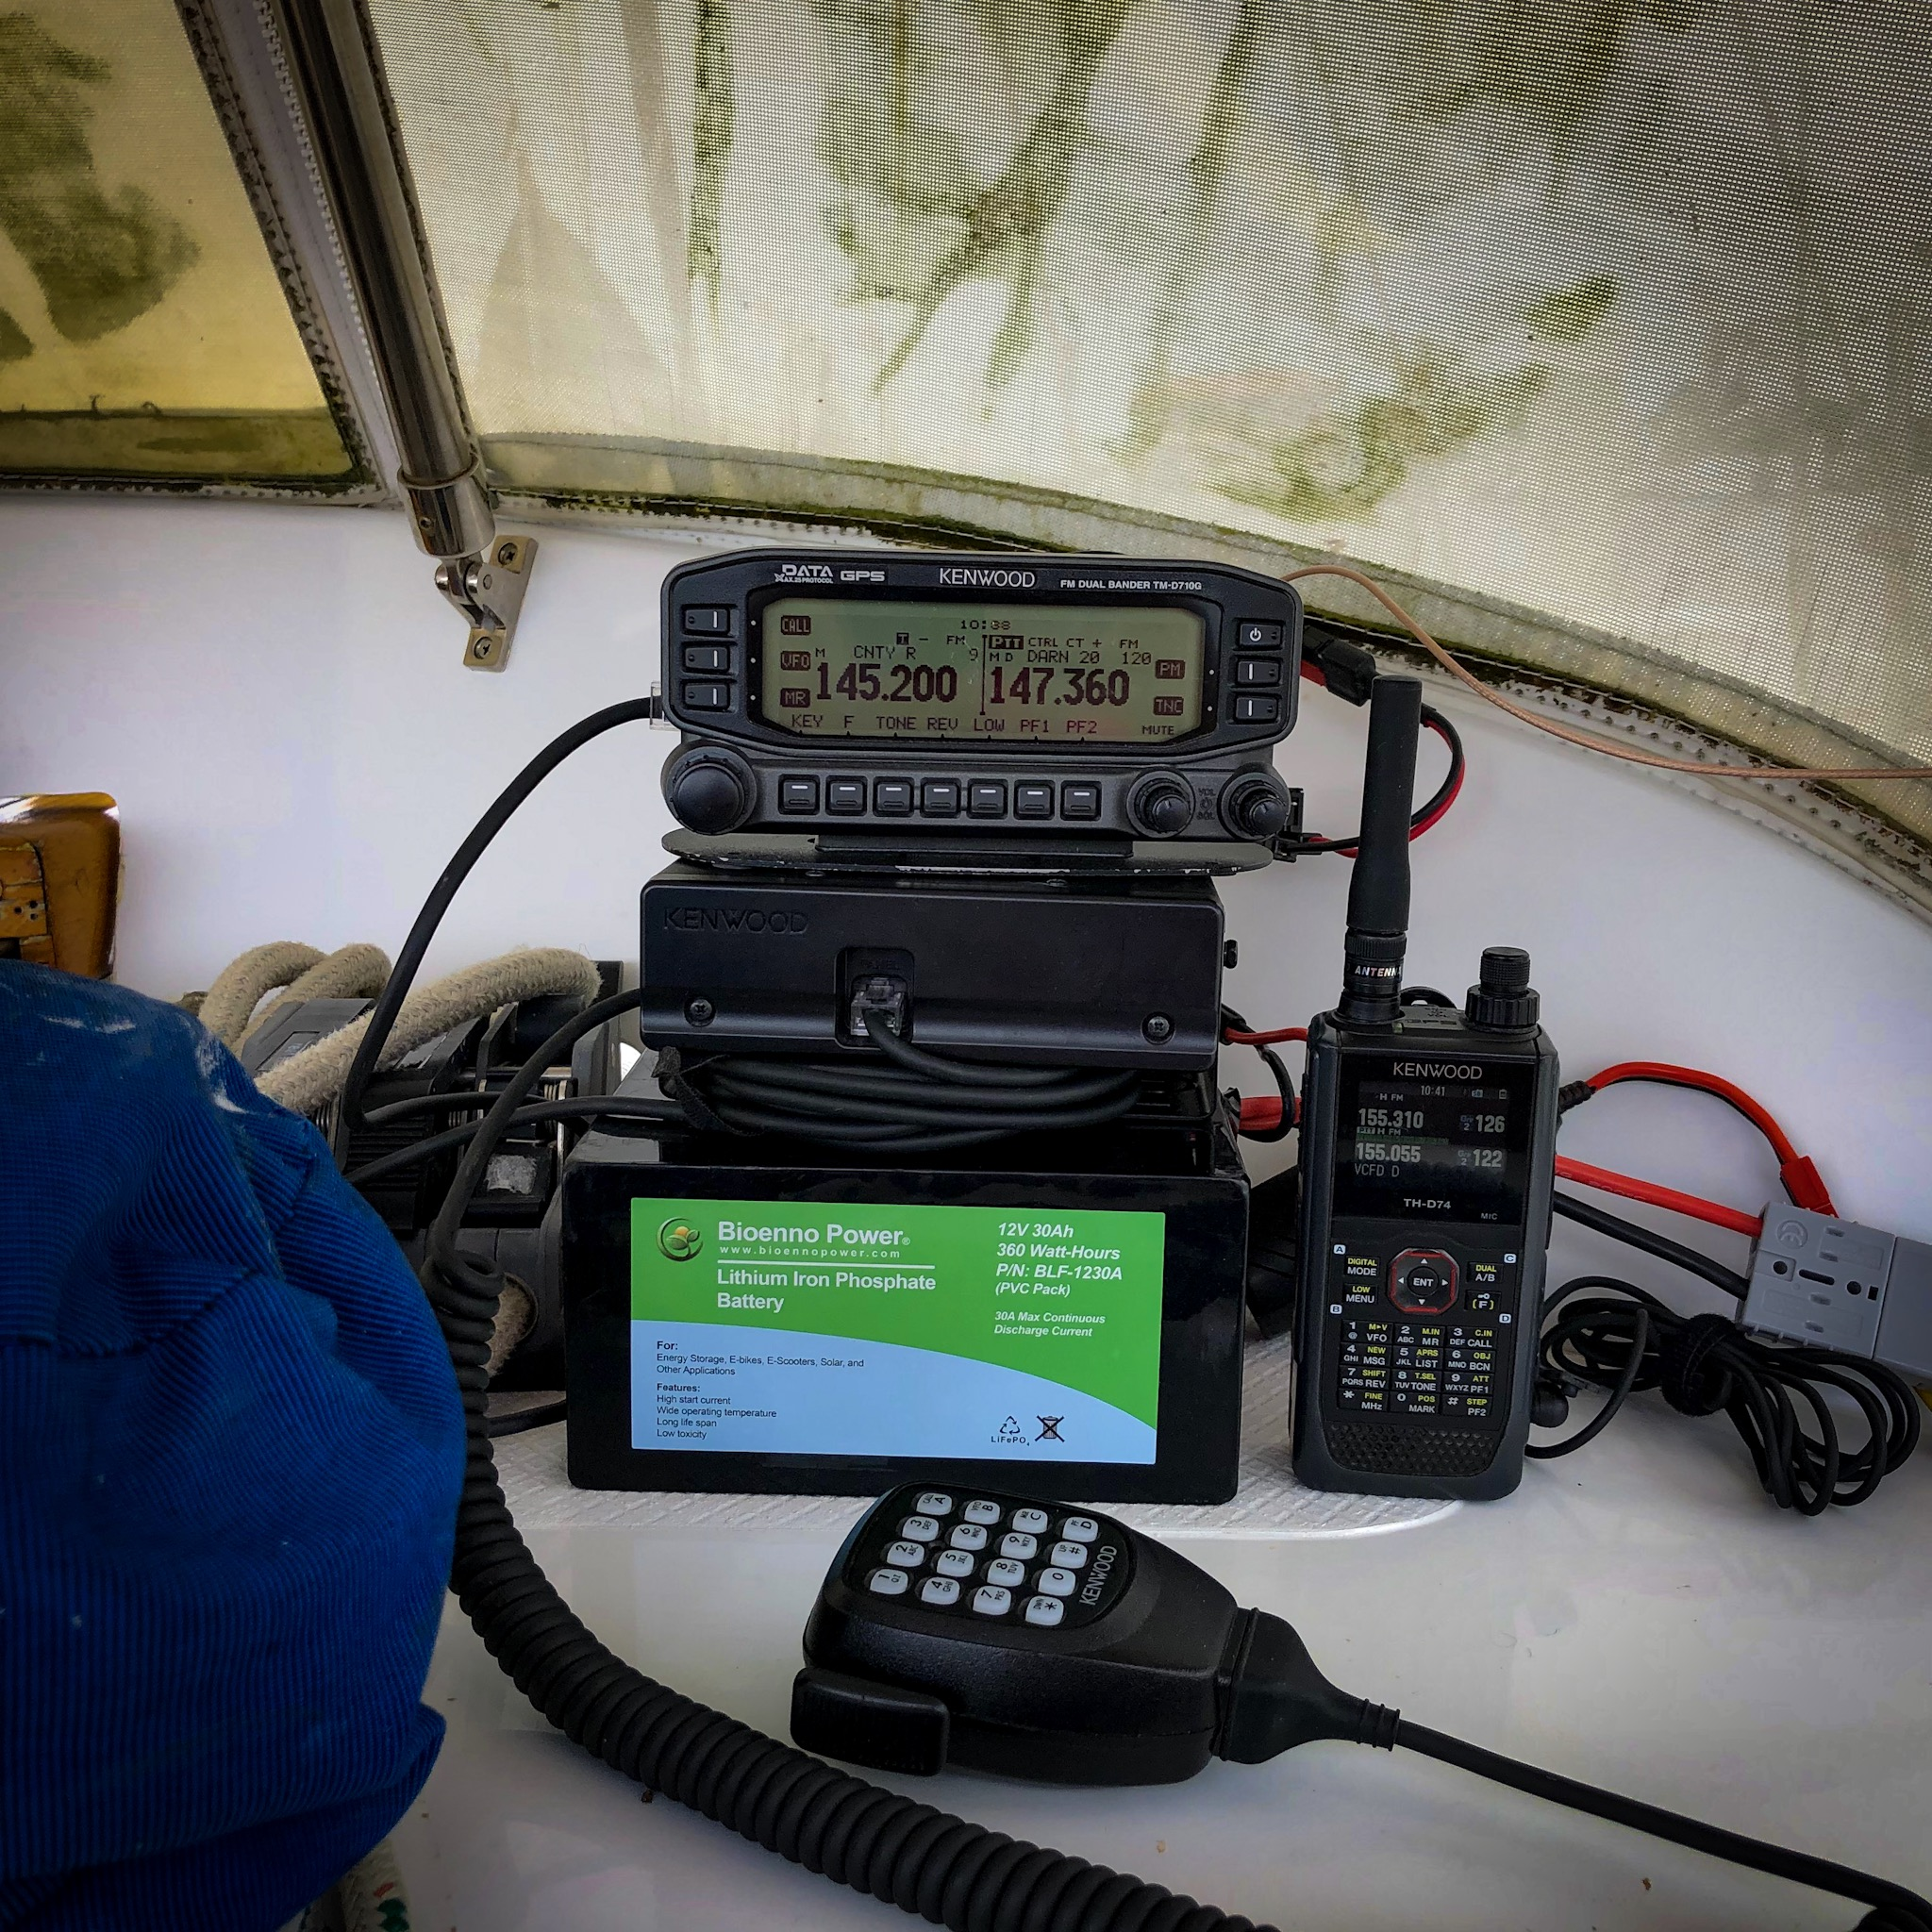 Typical Ham Radio VHF/UHF mobile and handheld radio station.